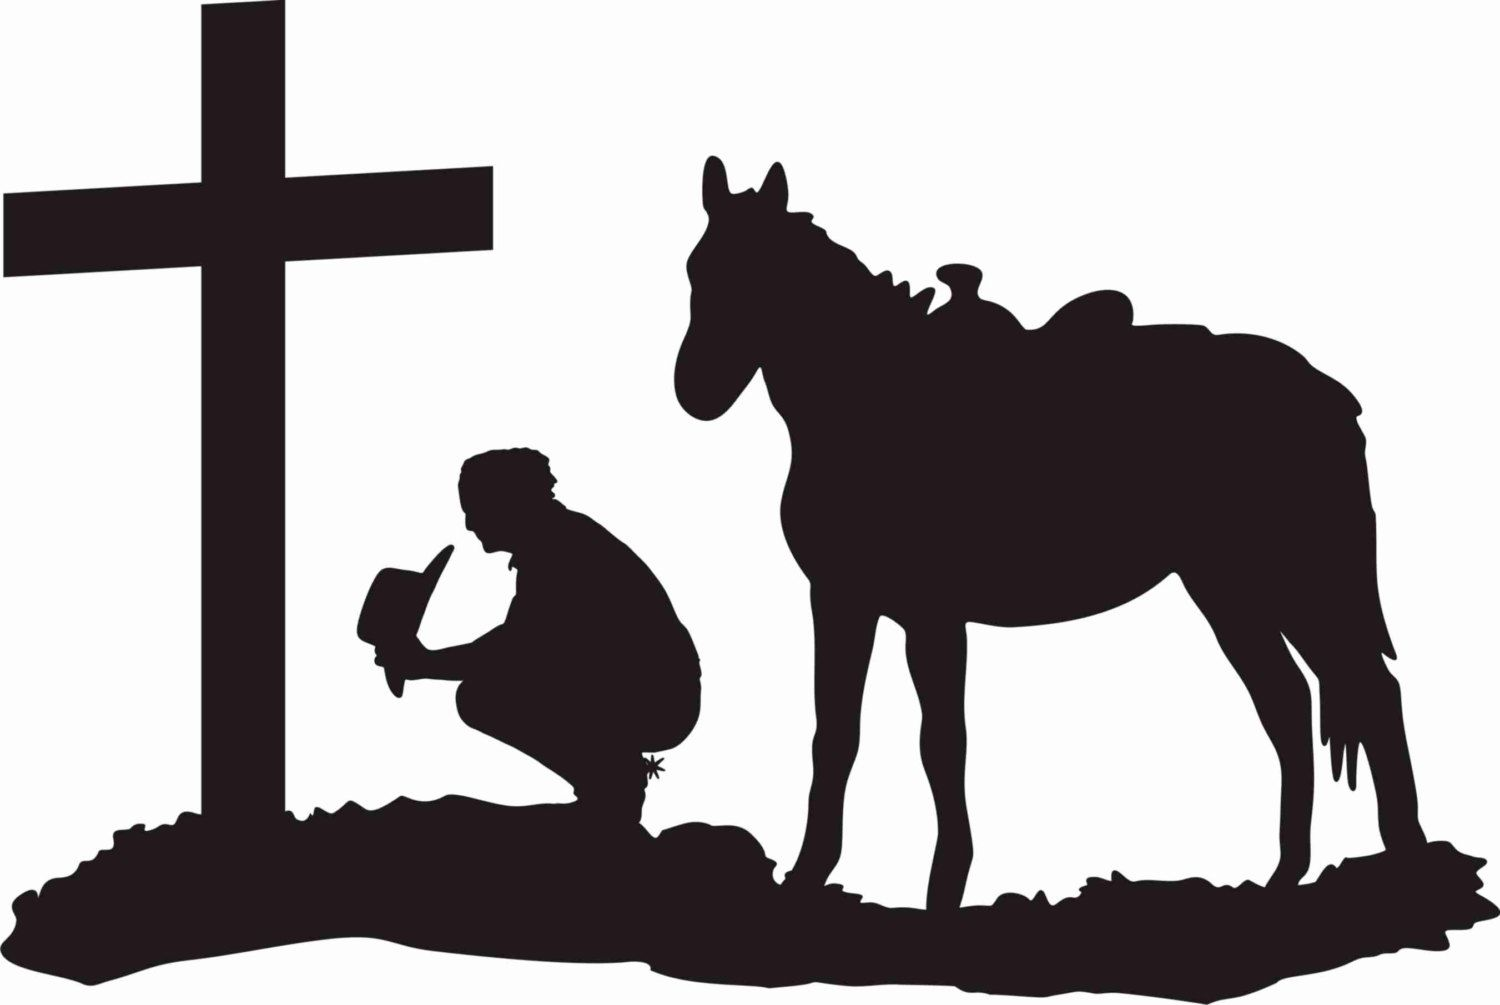 Cowboy church clipart free black and white download Cowboy at the cross praying, cowboy and horse kneeling at the cross ... black and white download